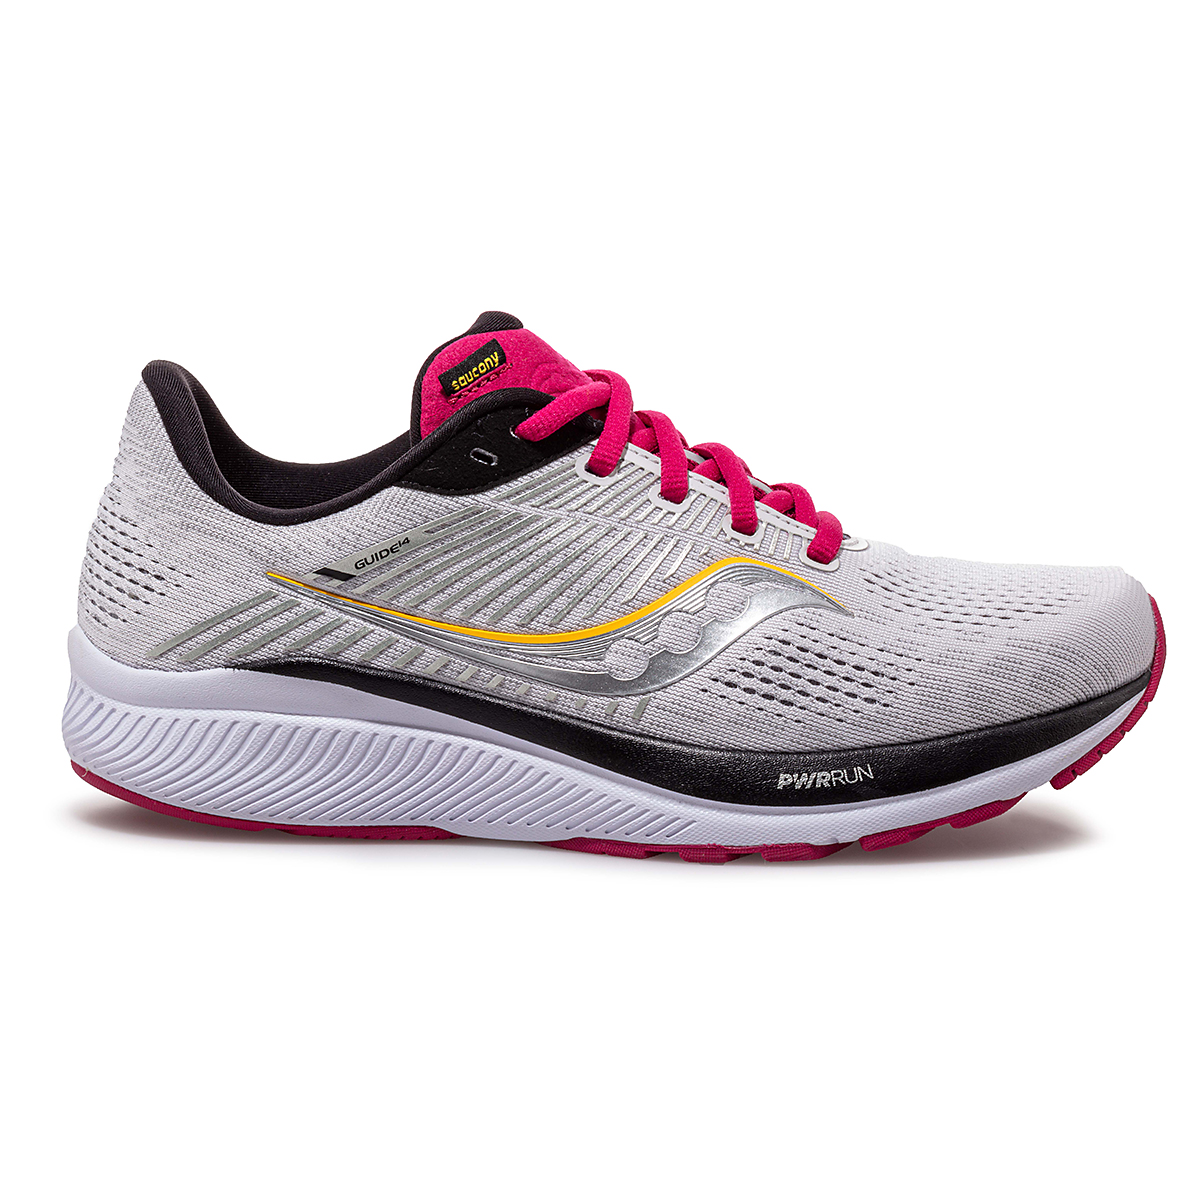 Women's Saucony Guide 14 Running Shoe - Color: Alloy/Cherry - Size: 5 - Width: Regular, Alloy/Cherry, large, image 1